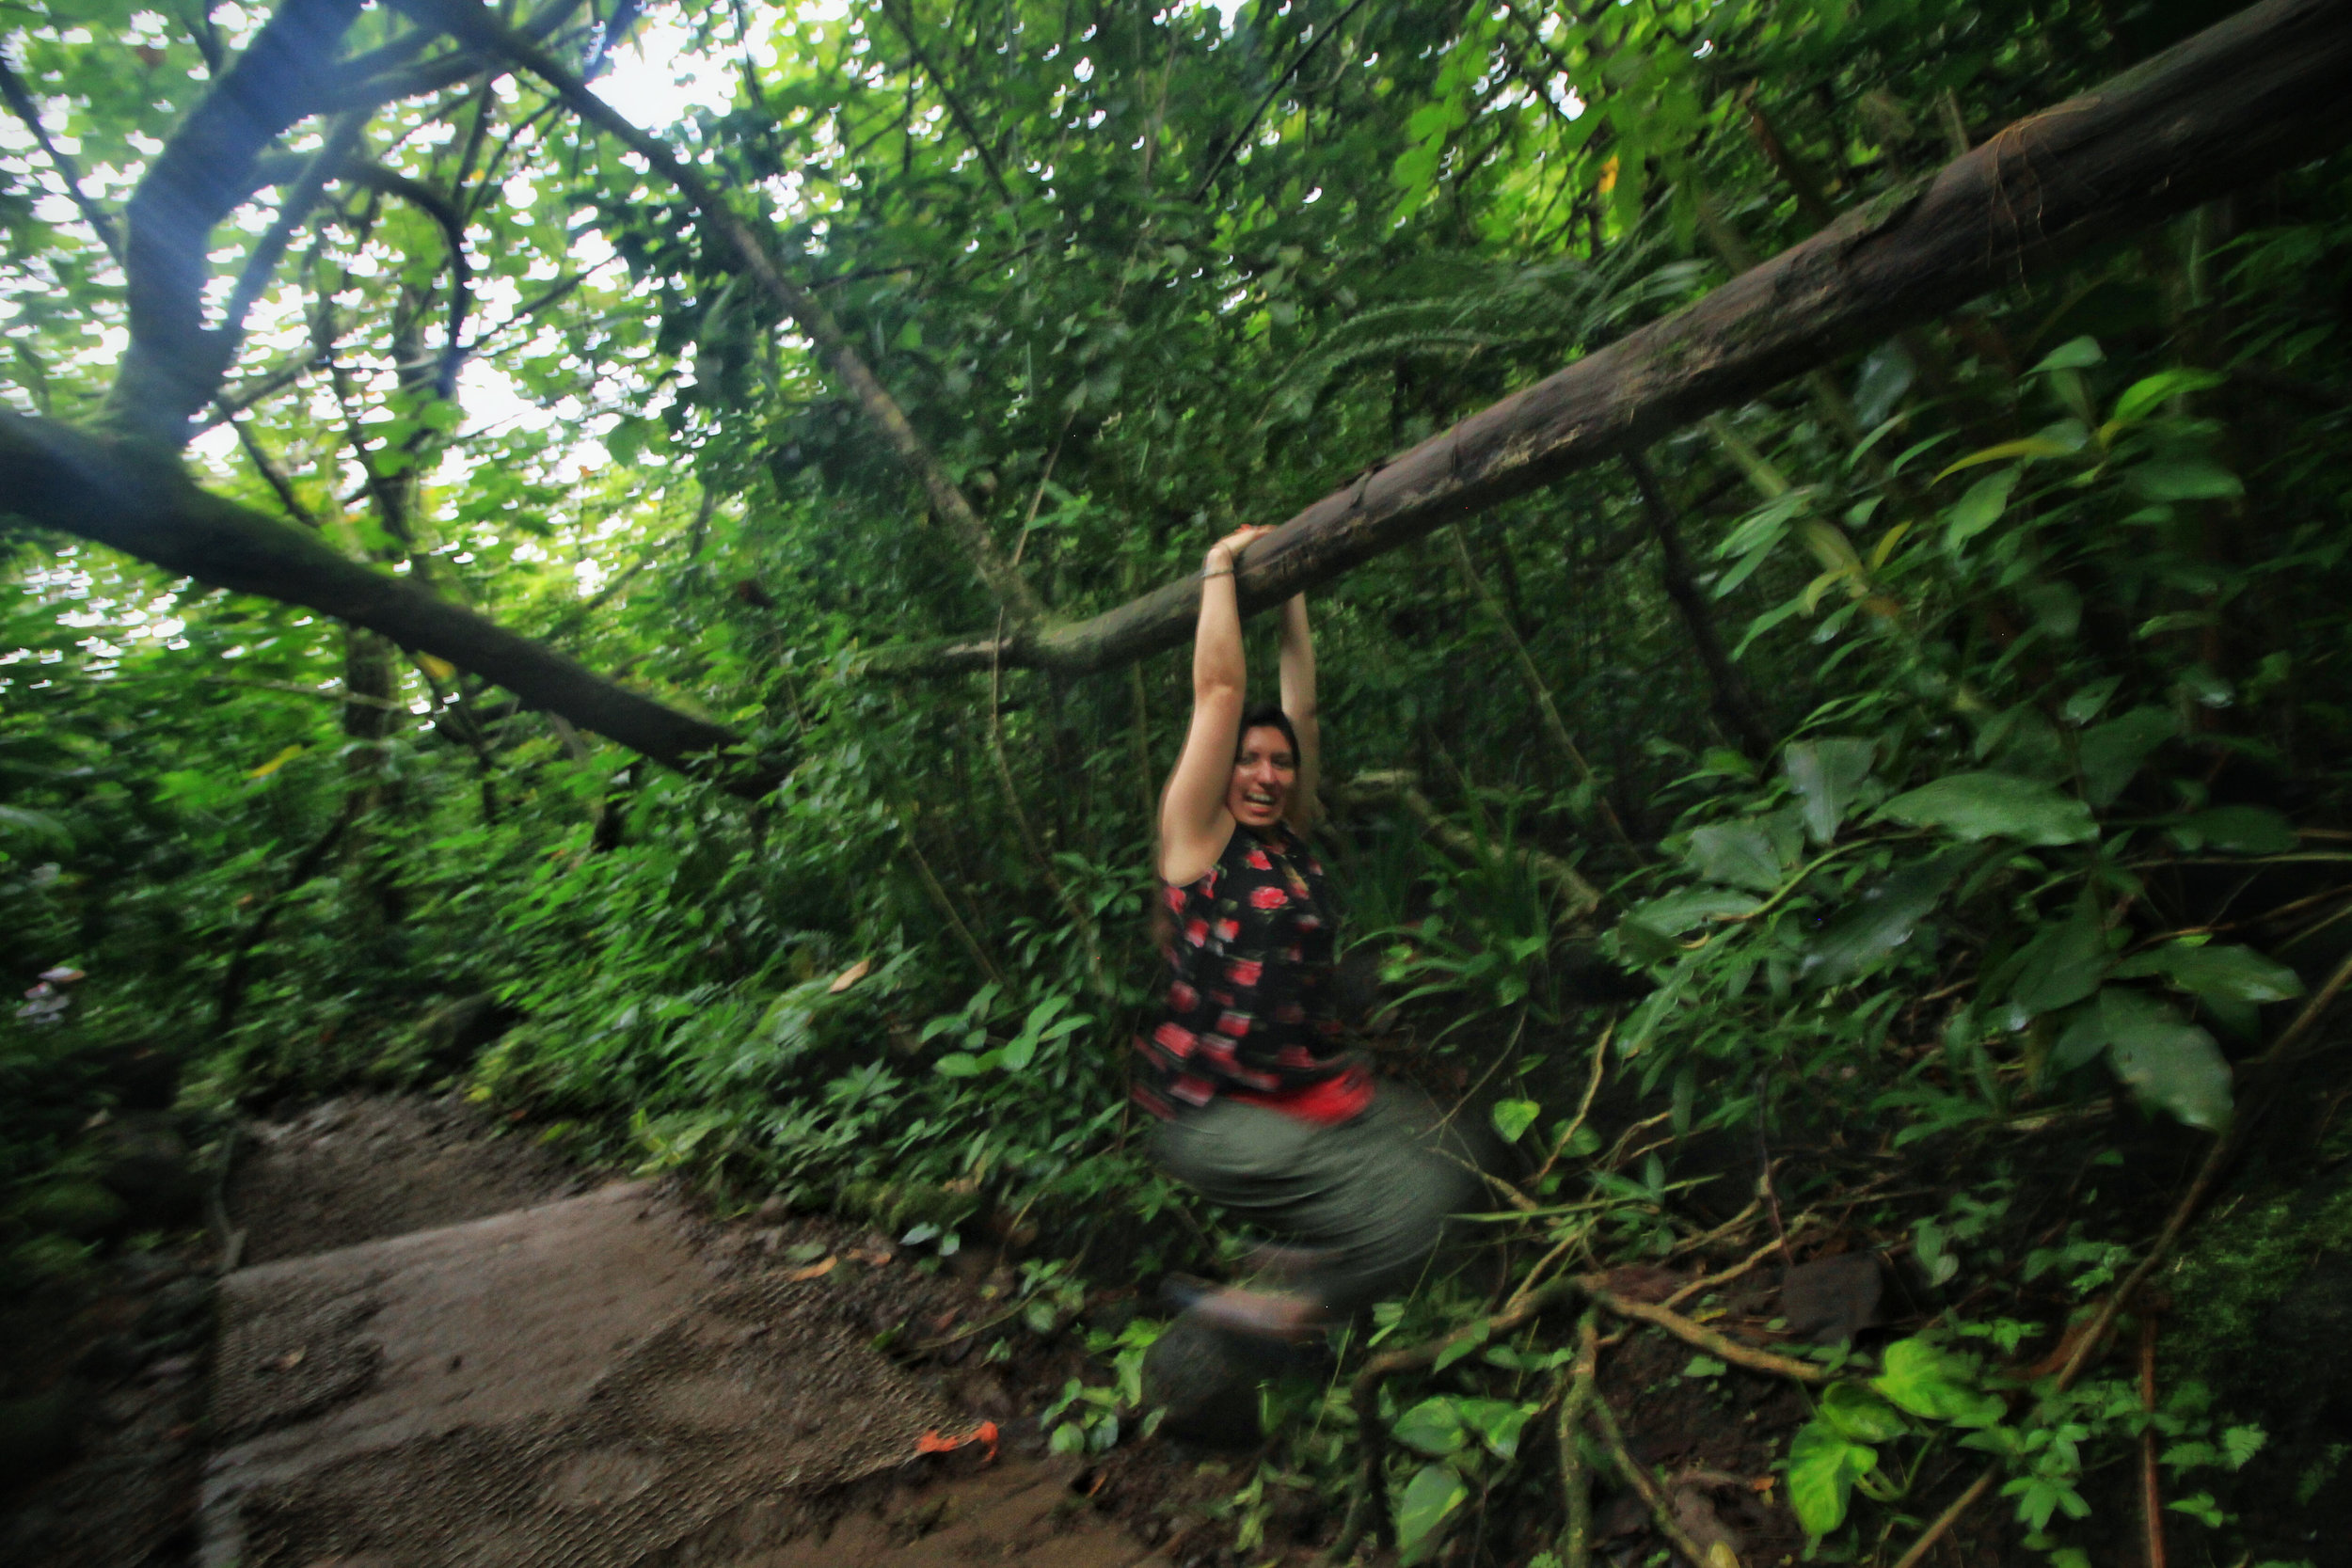 The sister swinging at Manoa Falls